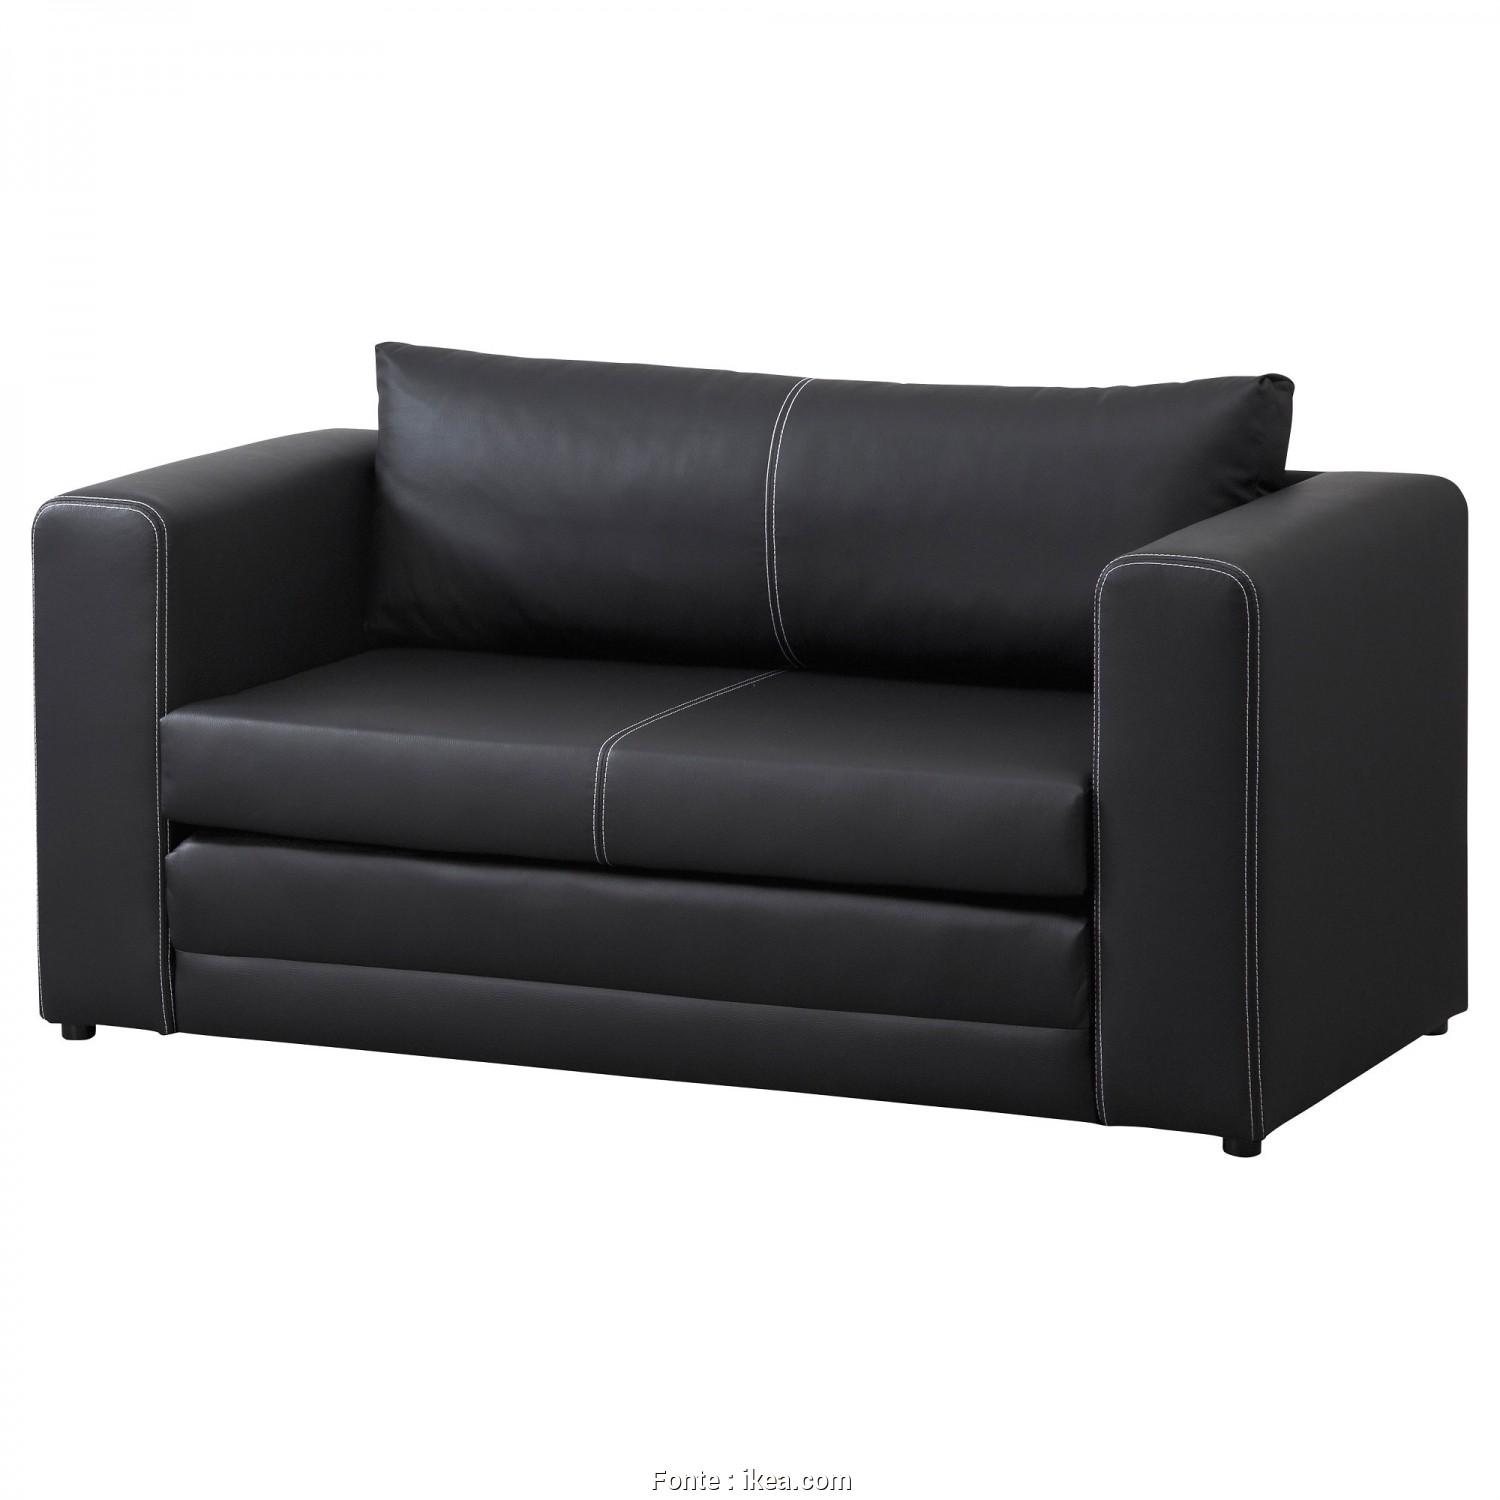 Futon Ikea Japan, Costoso Inter IKEA Systems B.V. 1999, 2018, Privacy Policy, Terms & Conditions, Notation Based On, Specified Commercial Transaction Act, Rules, IKEA